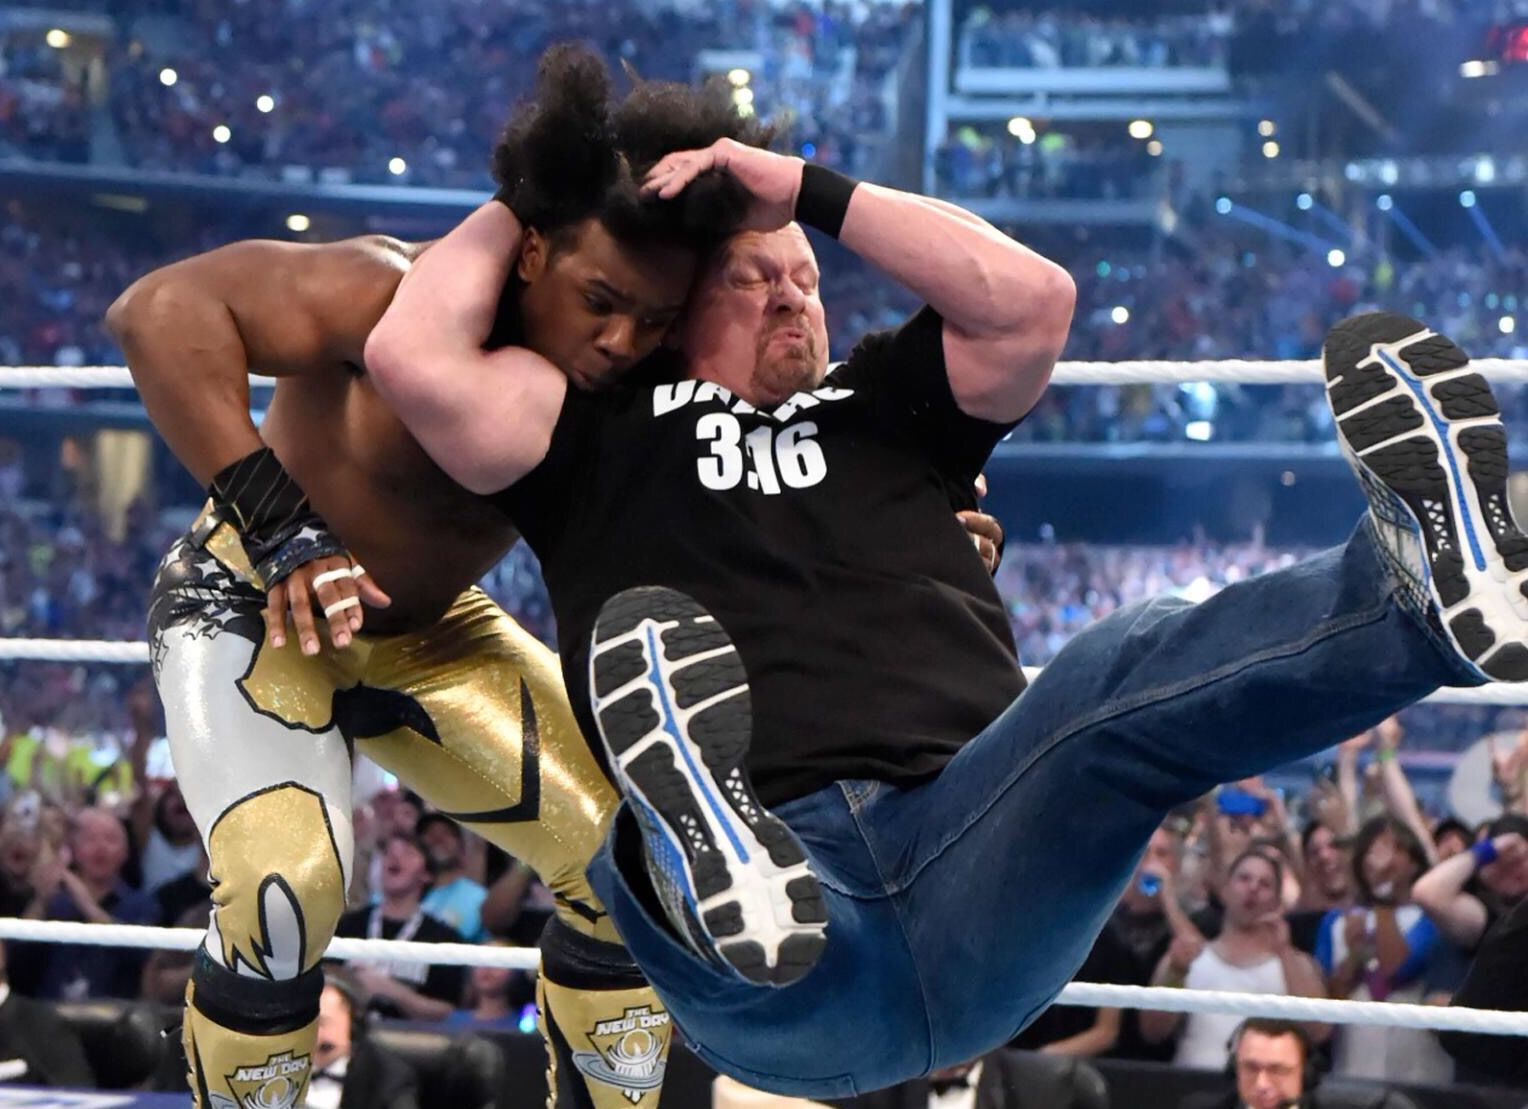 Stone Cold Stunner - PTW Wrestling podcast